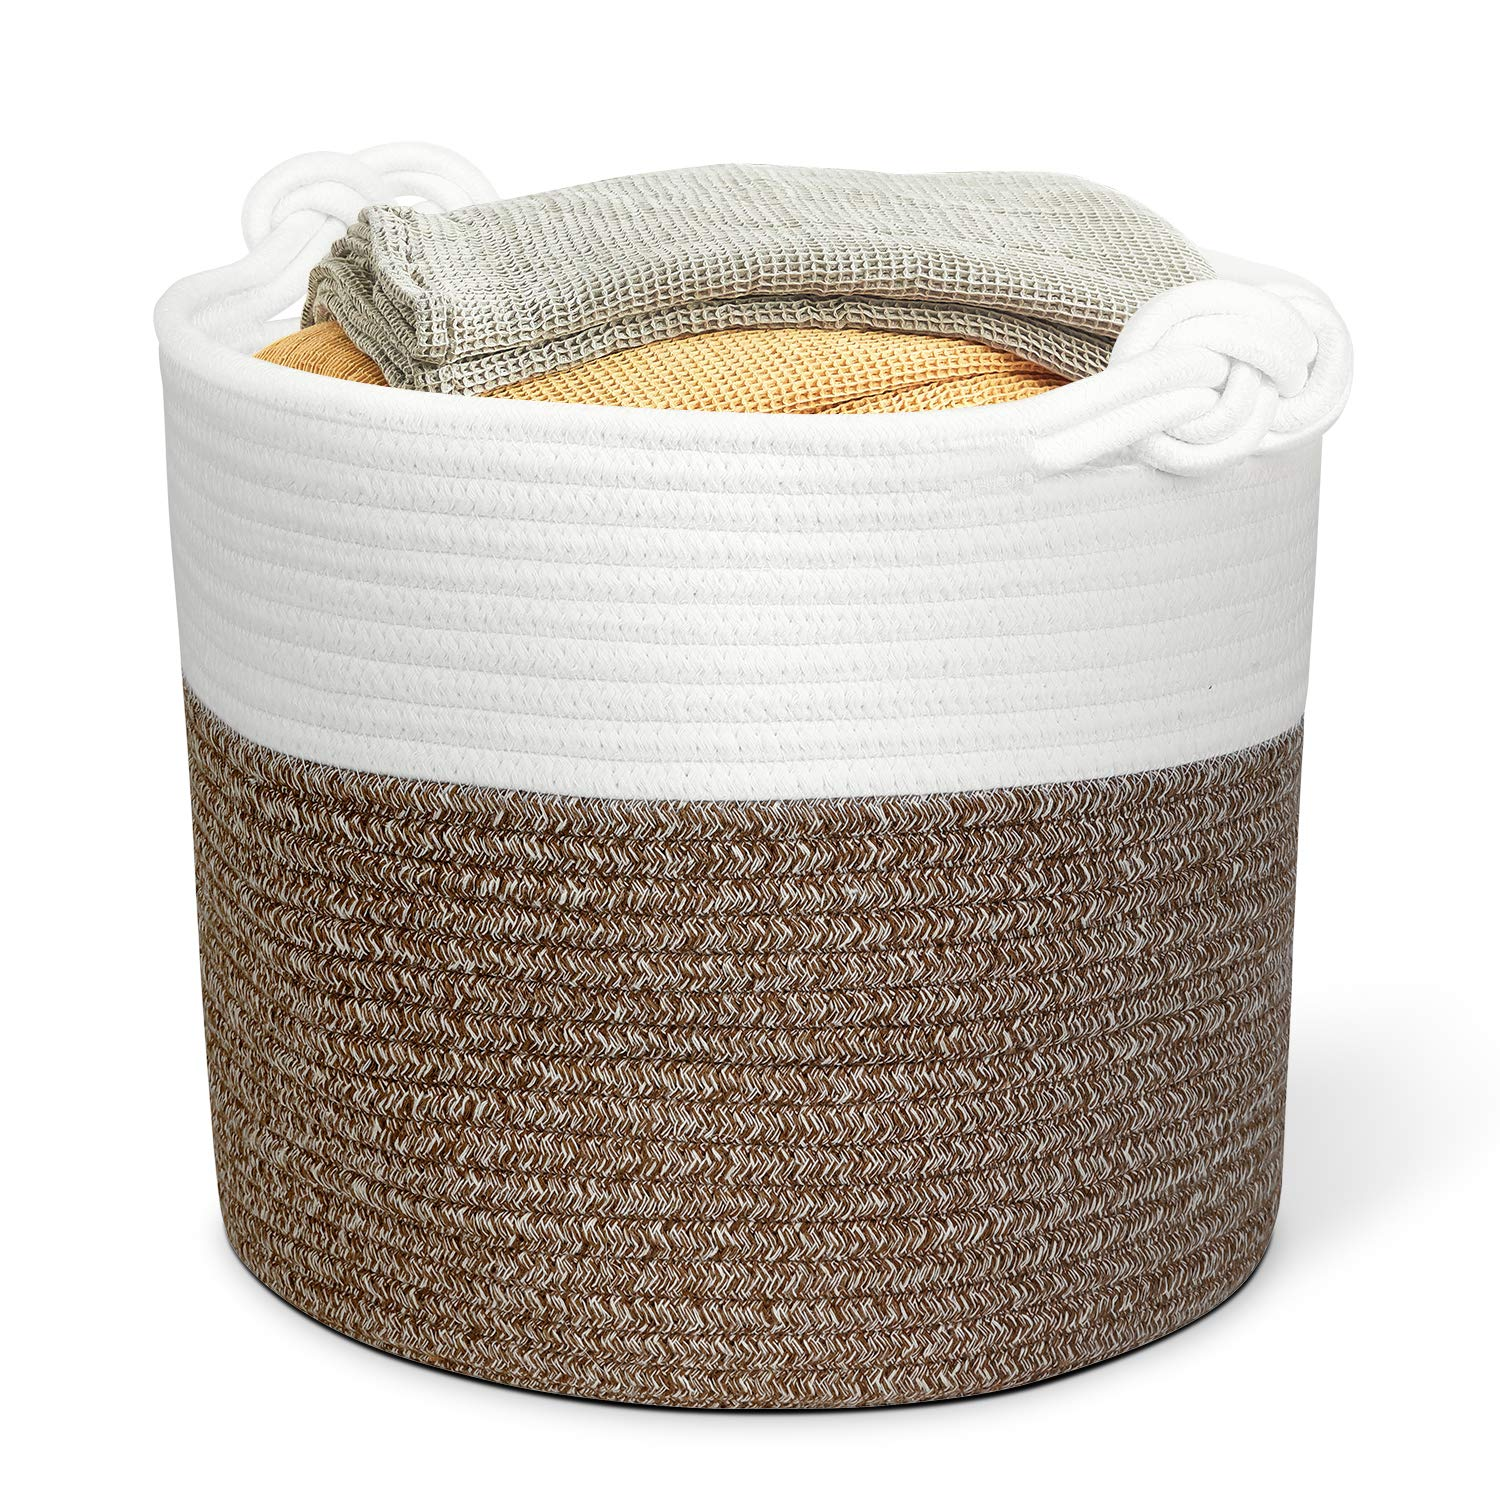 Polarduck Cotton Rope Basket 13 x 12 x 11 , Baby Laundry Basket, Laundry Hamper, Woven Blanket Basket, Nursery Bin Organizer, Toys Storage Basket with Lucky Knots Handle, Natural White Jute